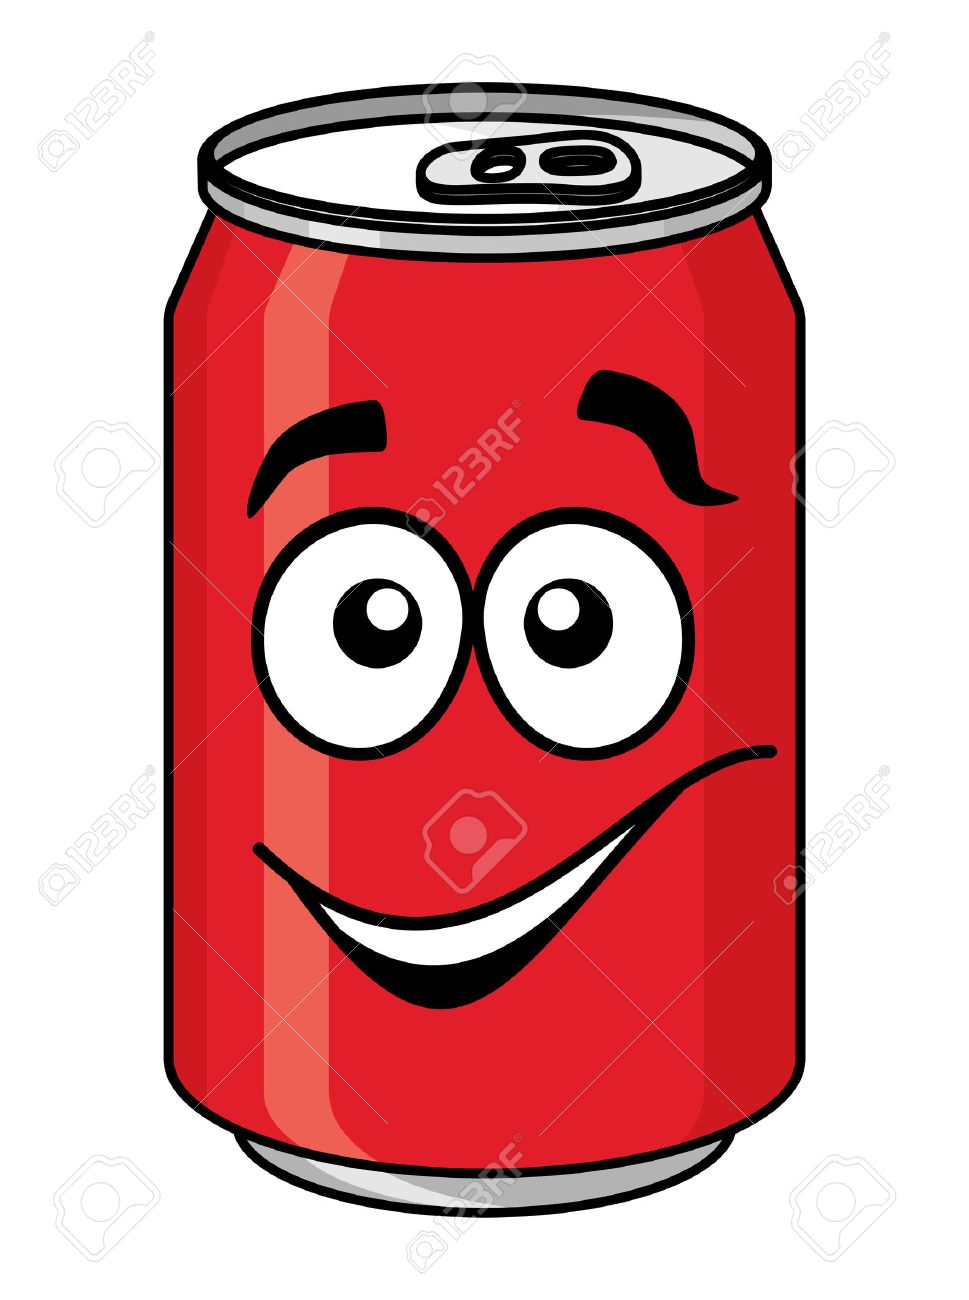 red cartoon soda or soft drink can with a smiling face isolated rh 123rf com soda can cartoon outline cartoon soda pop can